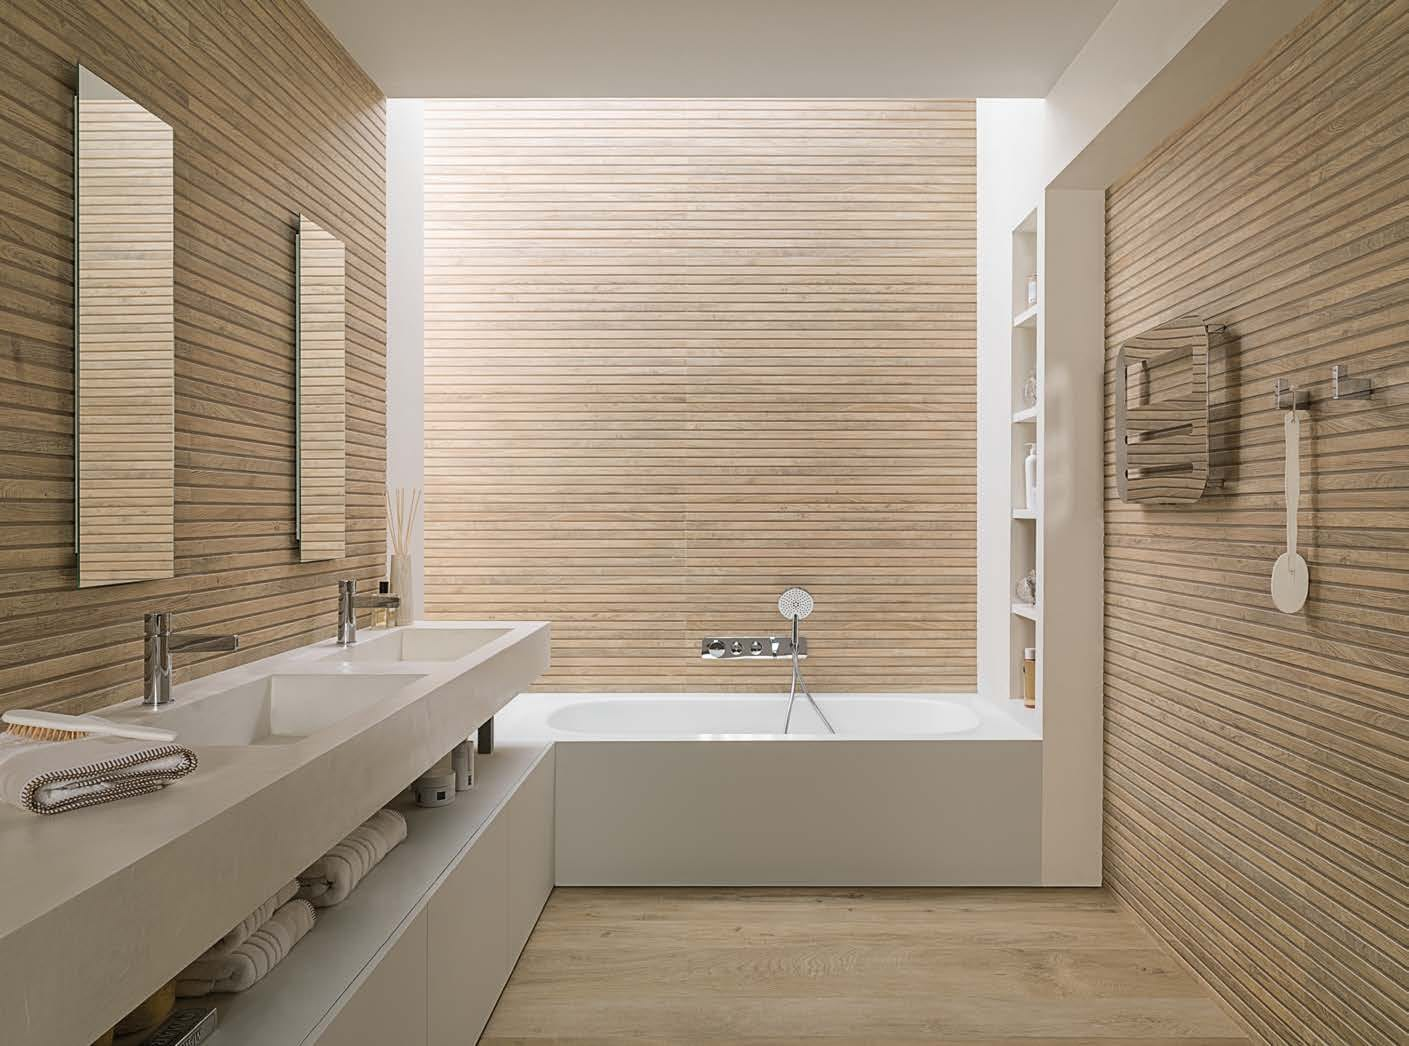 Porcelanosa #24 Lexington - Porcelain Tiles - ArchStone Design